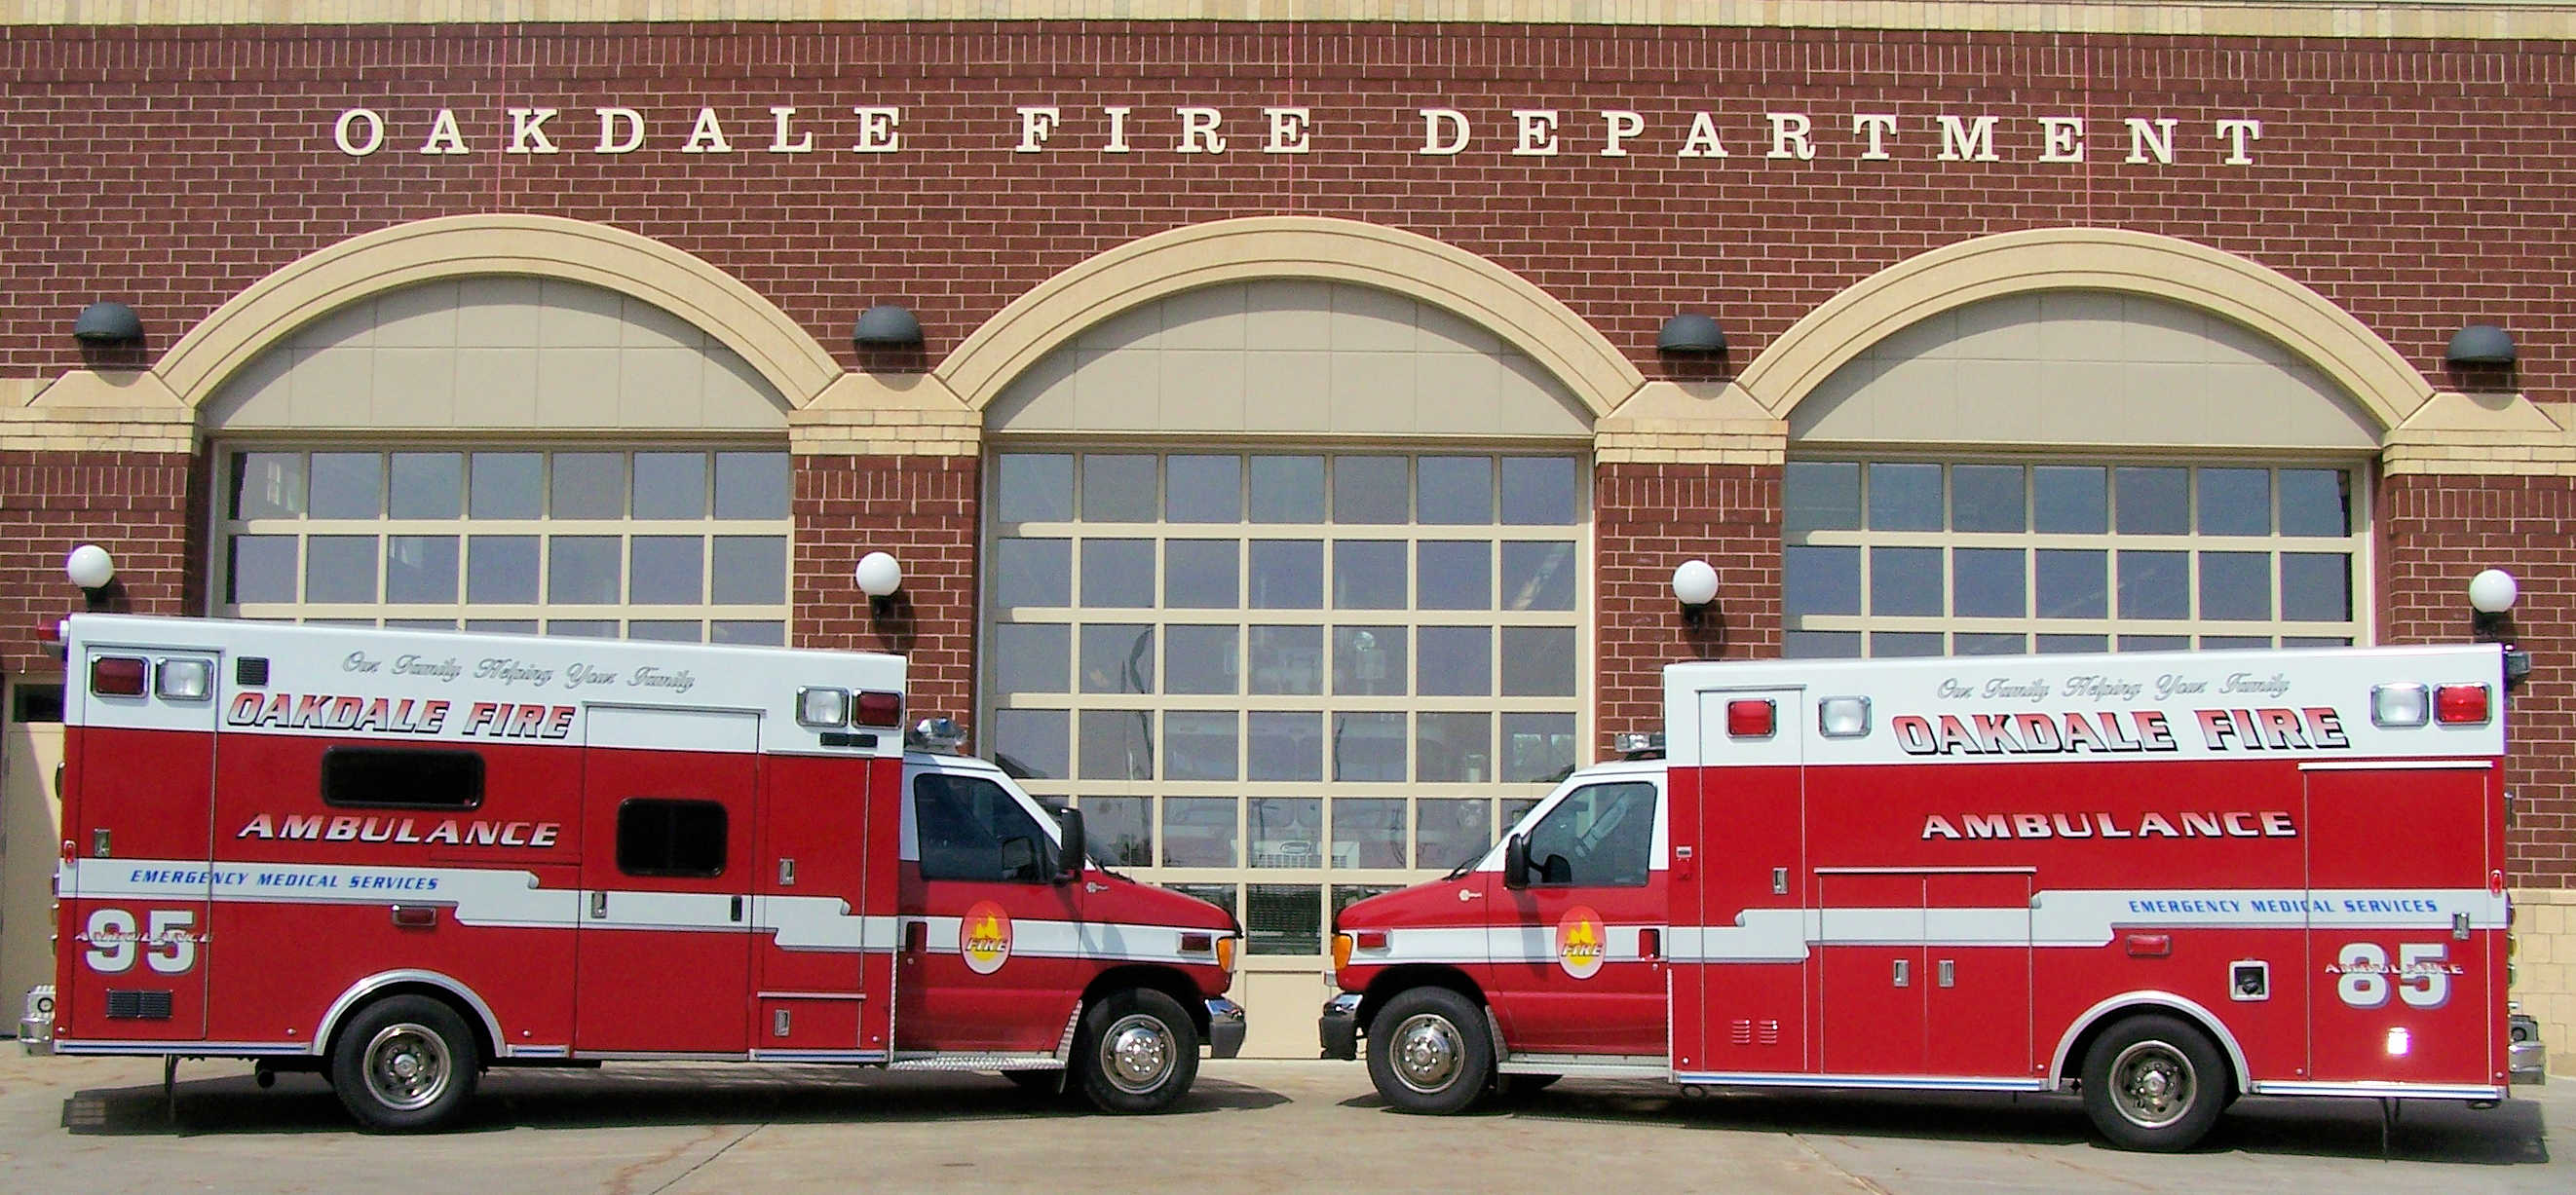 Two Oakdale fire department ambulances parked in front of a fire station